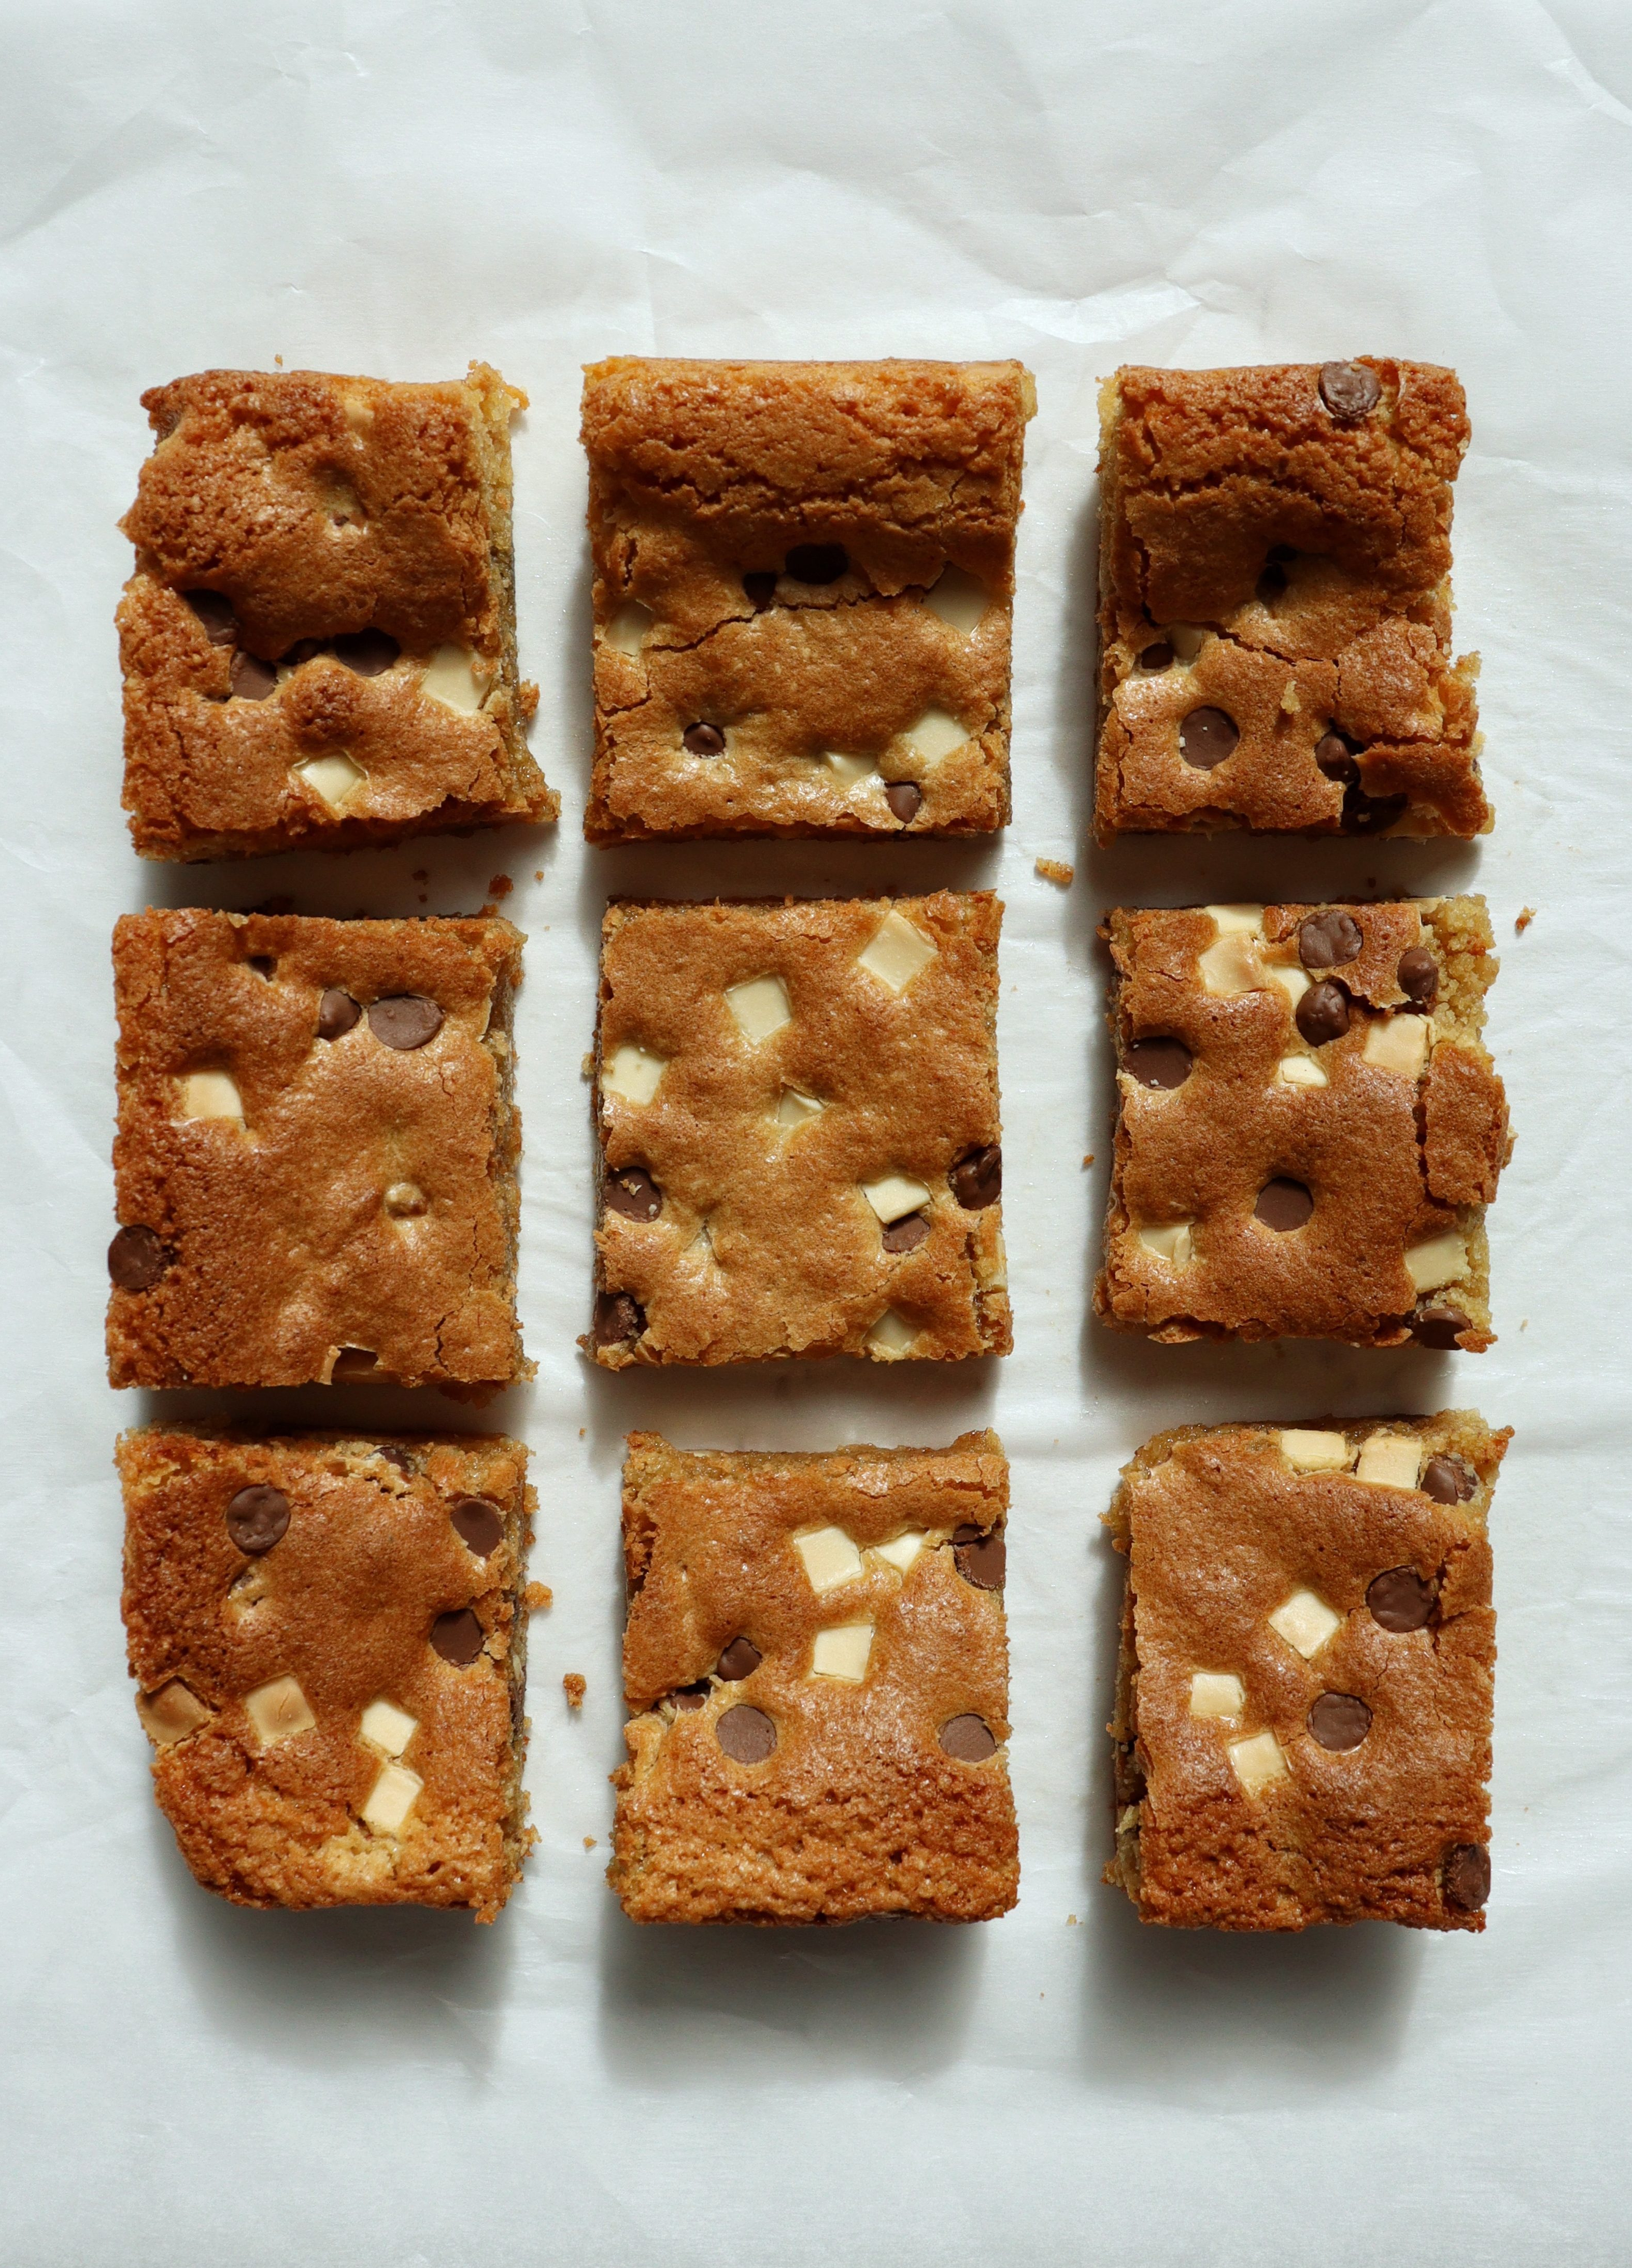 Gluten-free chocolate chip blondies